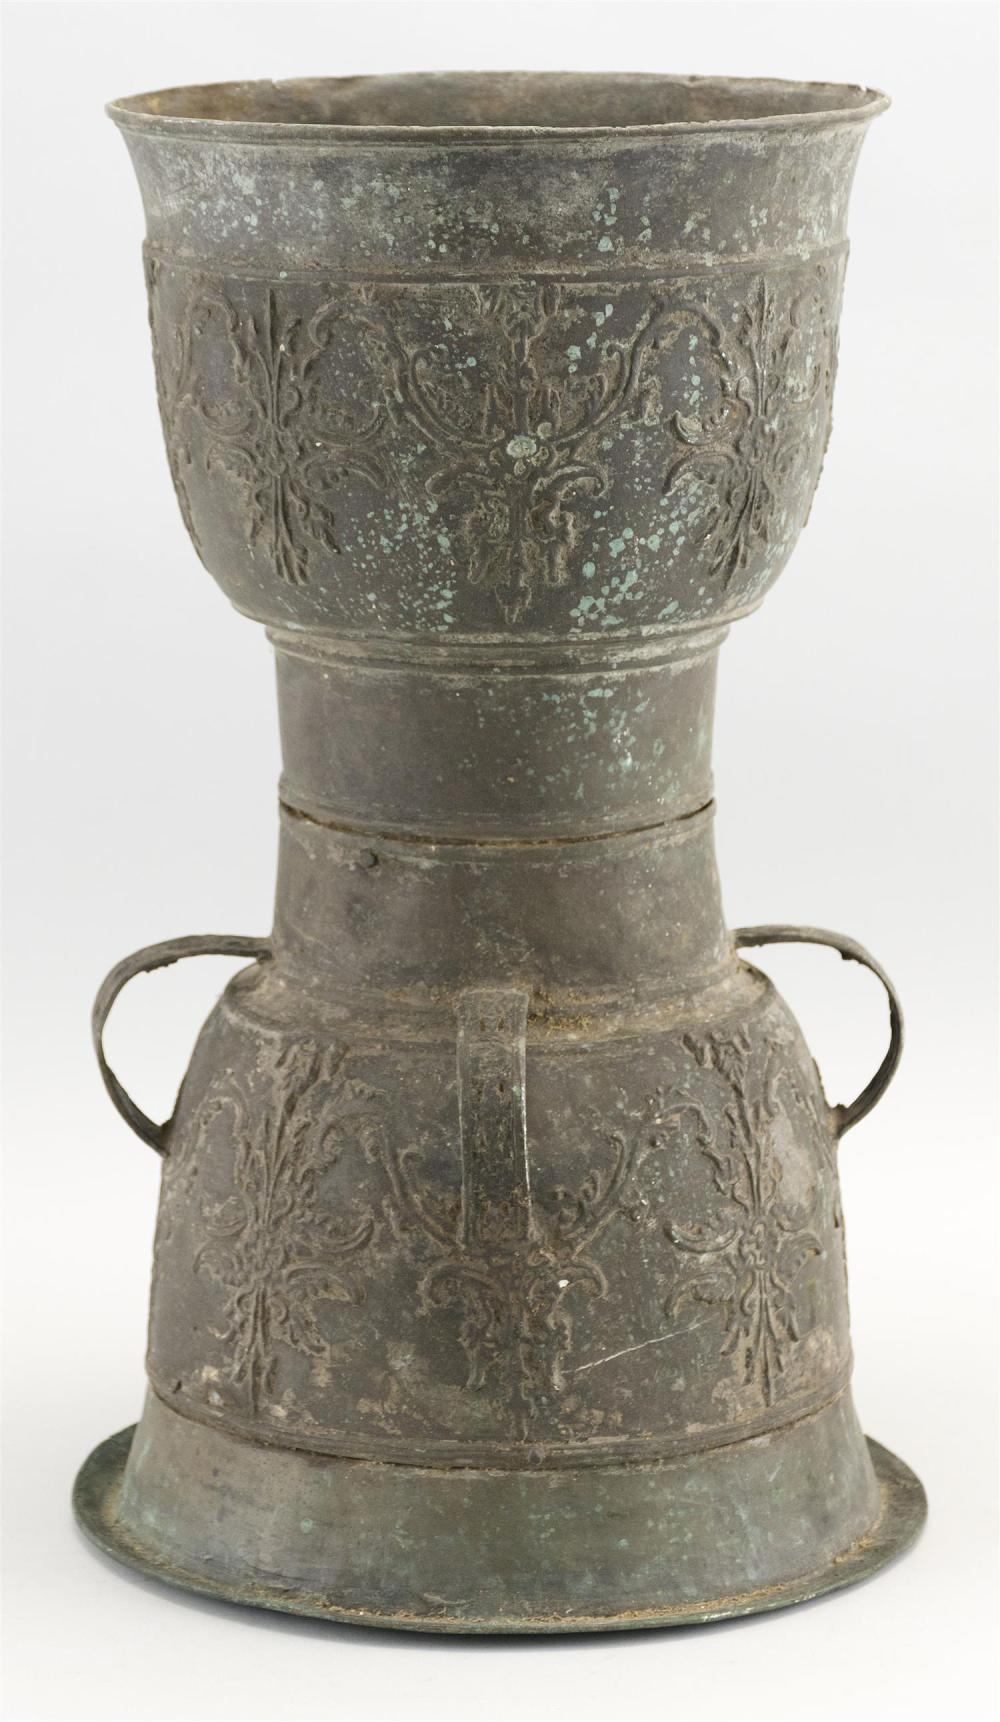 CHINESE BRONZE ARCHAIC-STYLE WAISTED VASE Top and base with raised foliate decoration. Base with loop handles extending to waist. He...